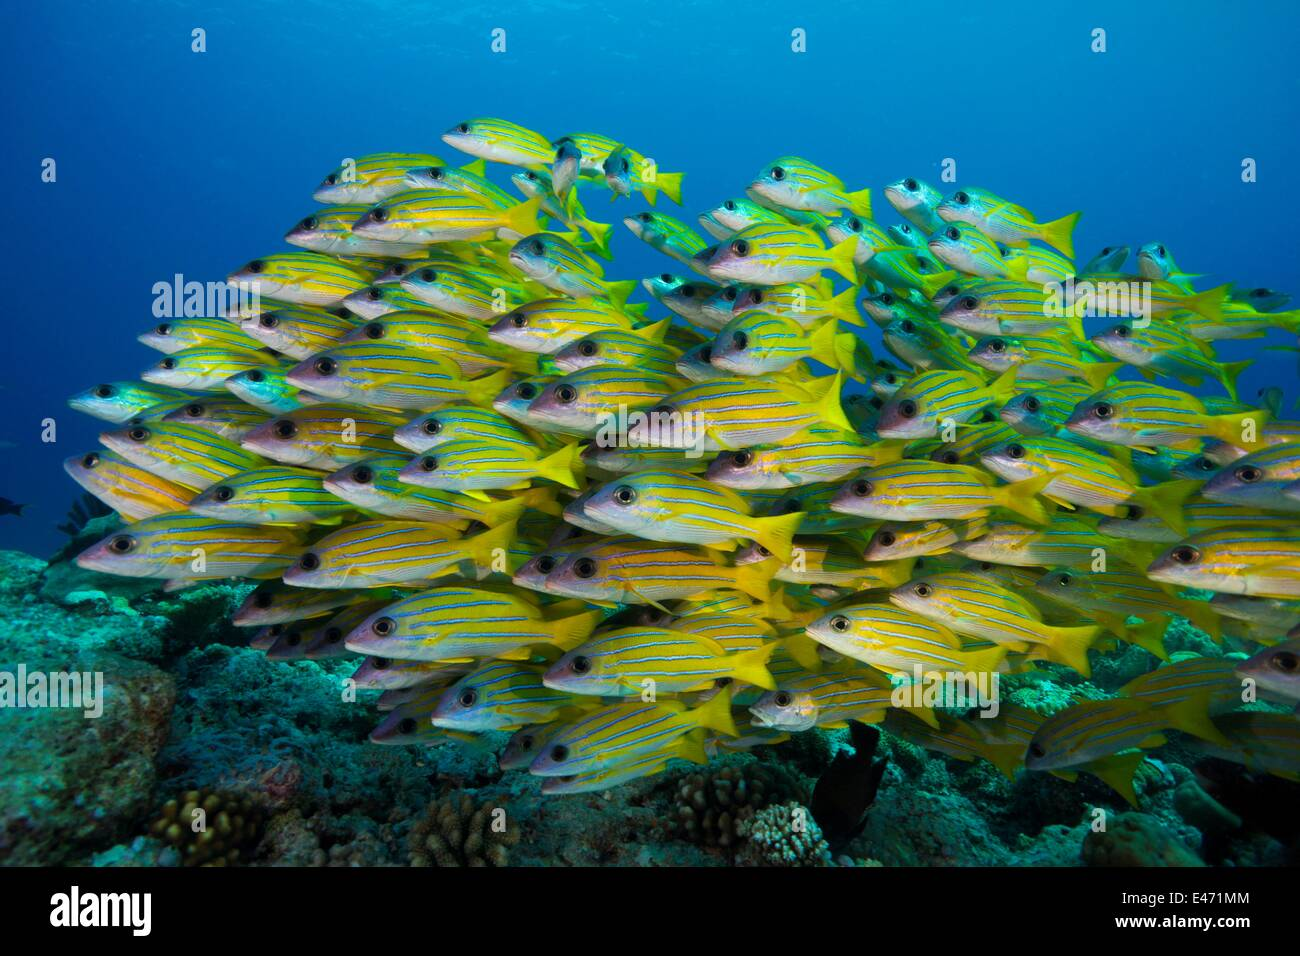 Bluelined snappers, (Lutjanus Kasmira), Palau, Ozeanien April 2014 - Stock Image